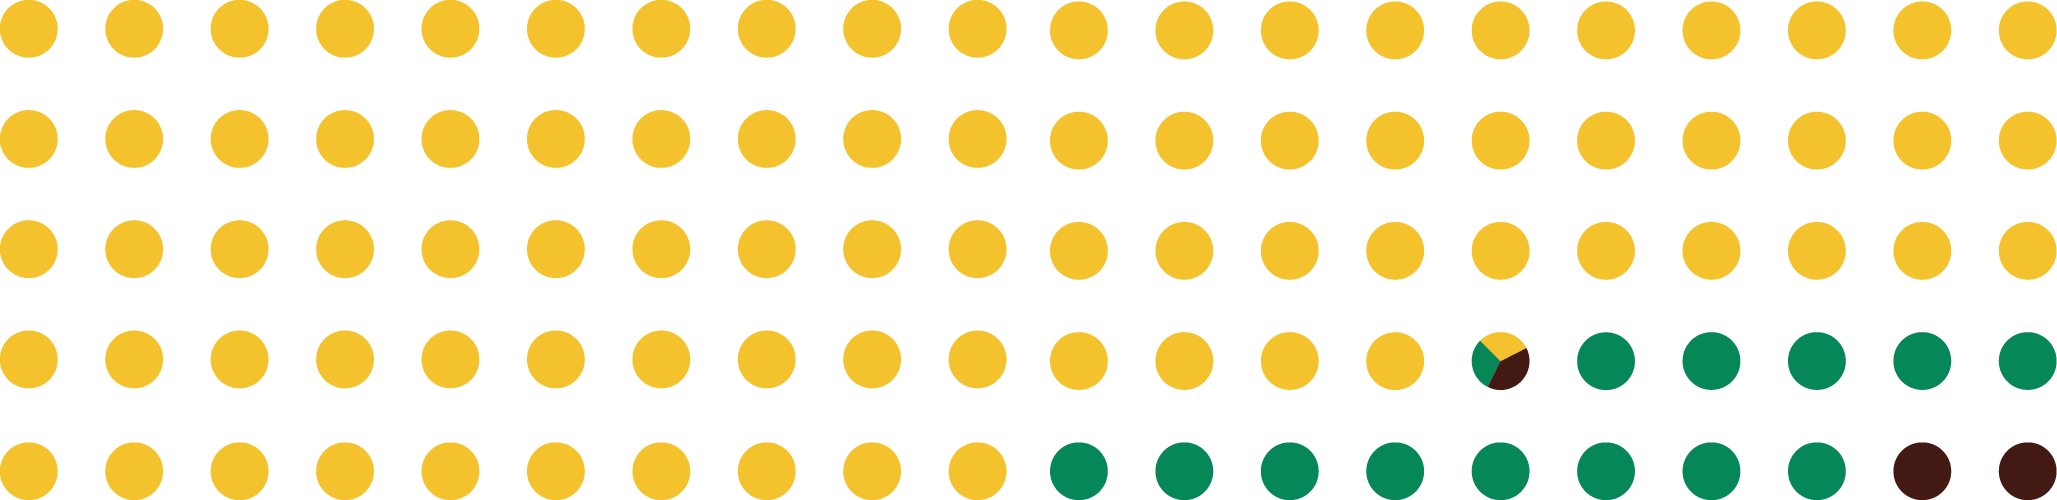 A grid of black, green and yellow circles